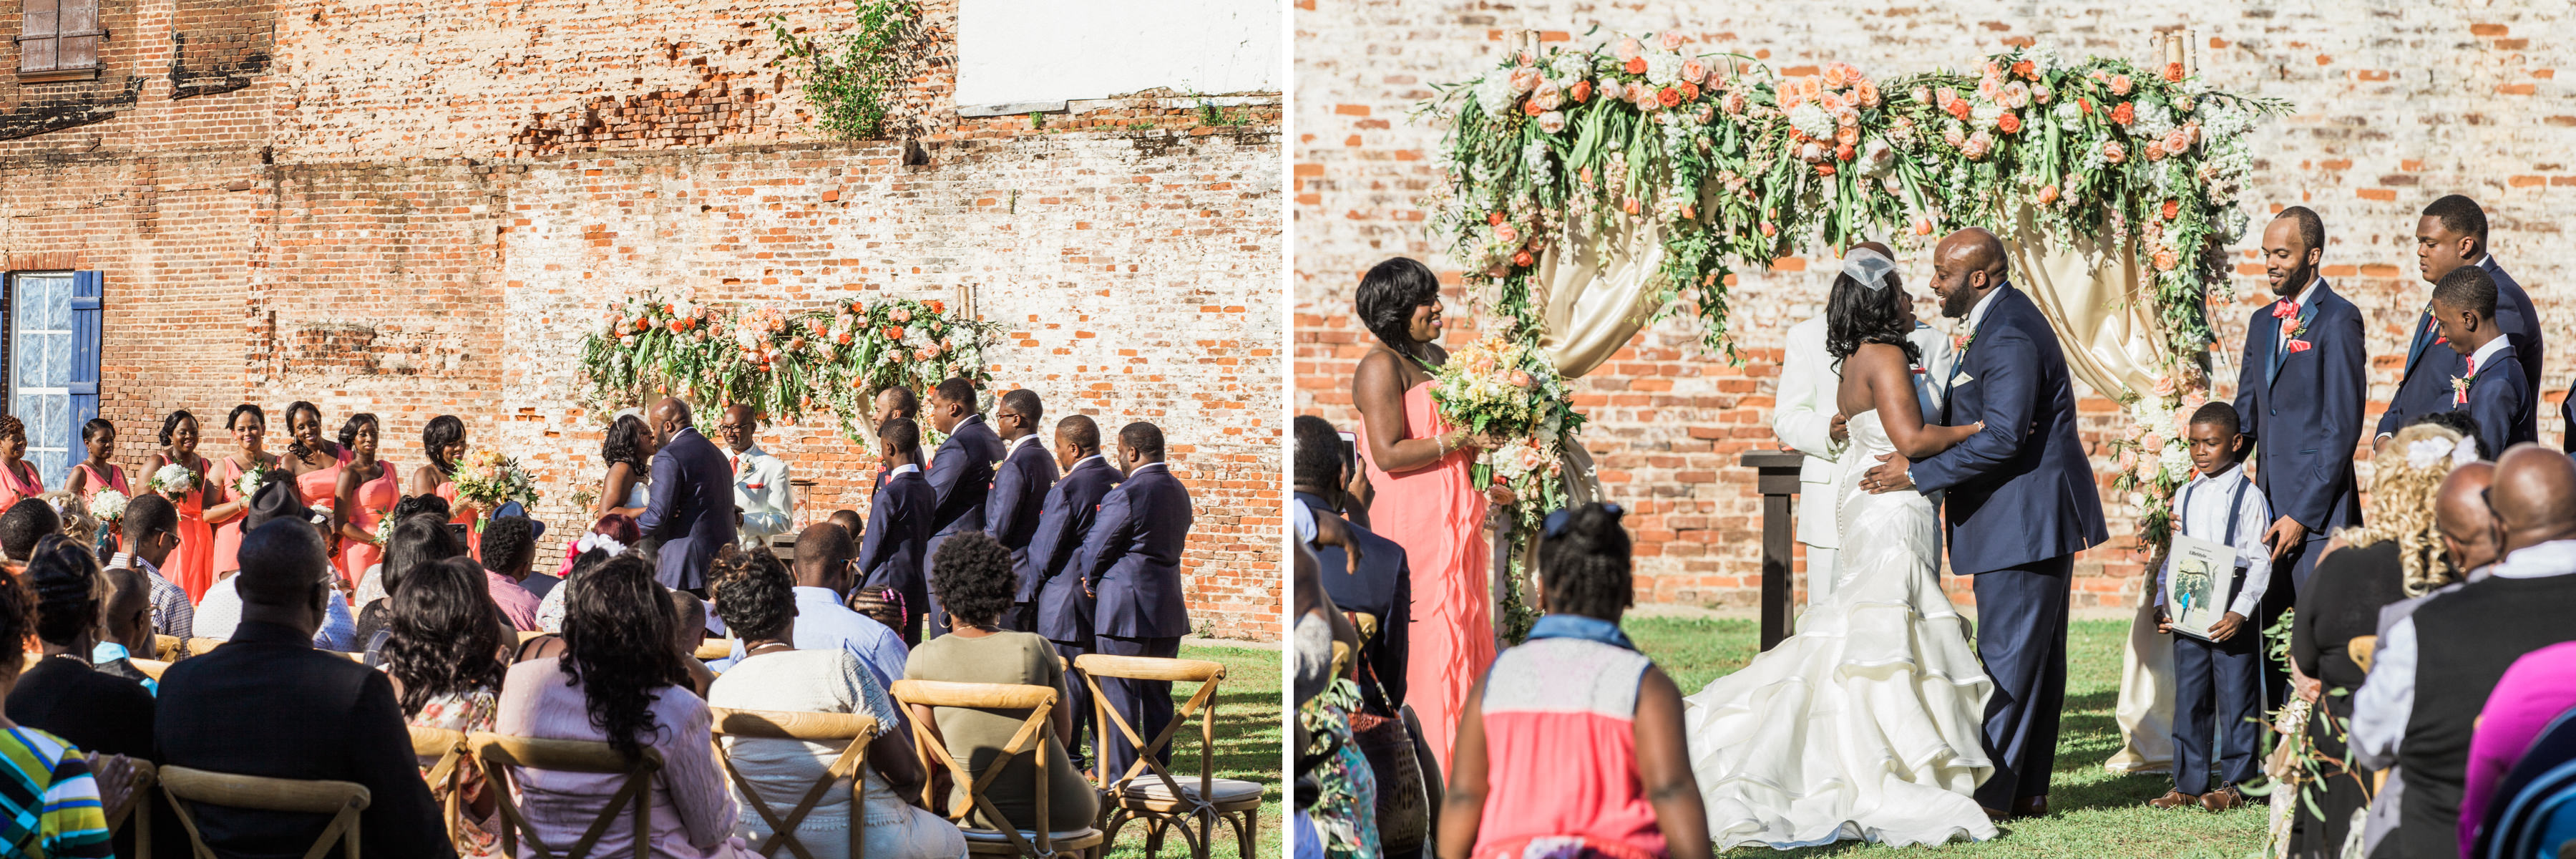 FLOWERS_WEDDING_SELMA_ALABAMA_WEDDING_PHOTOGRAPHY_88